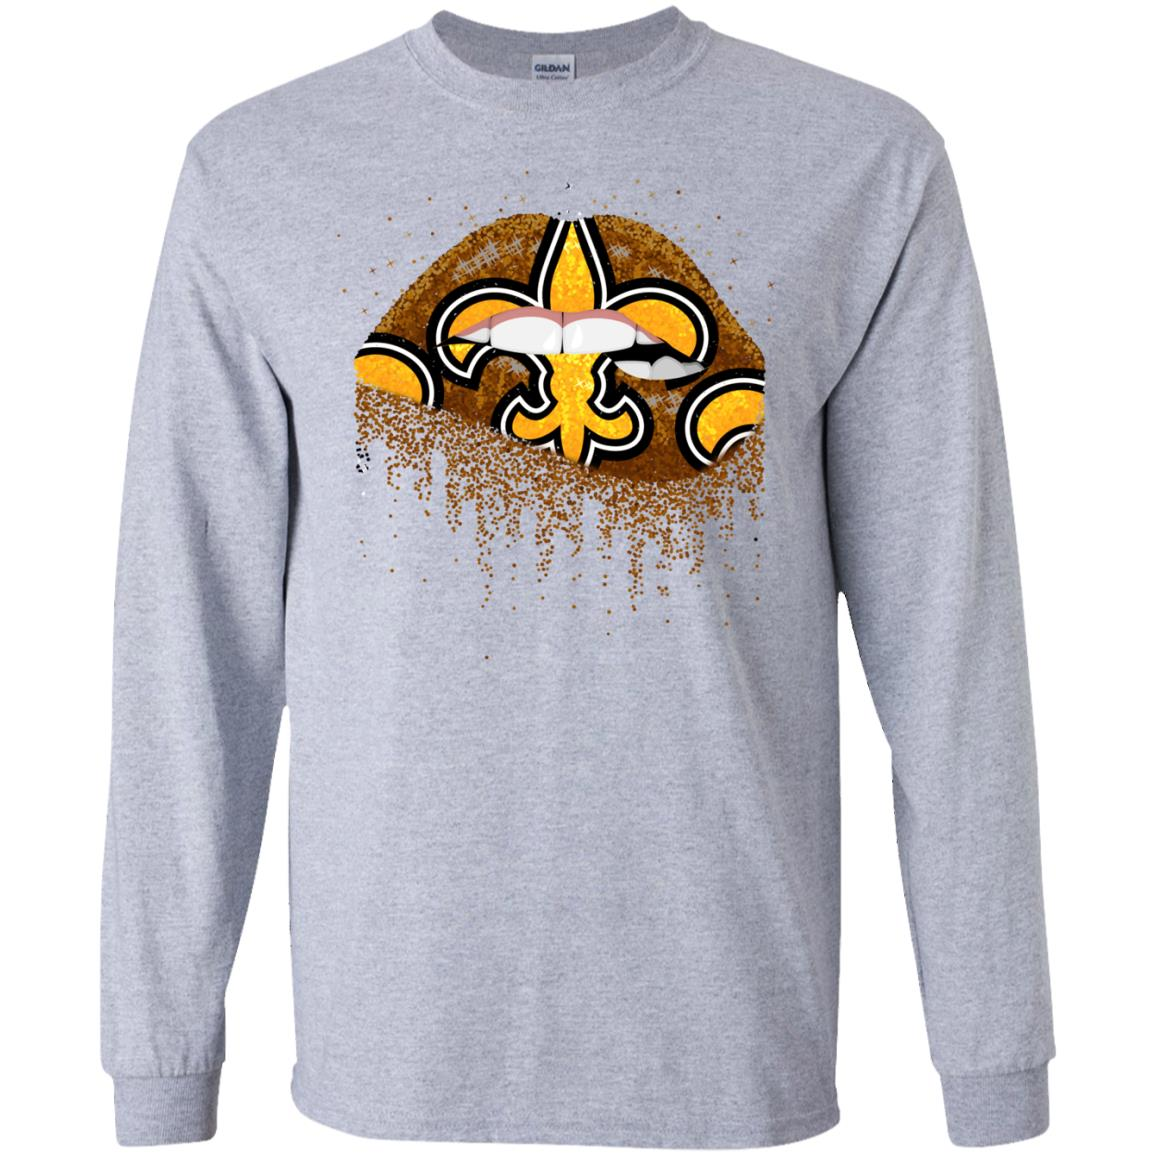 New orleans saints lips t shirt hoodie long sleeve for New orlean saints shirts